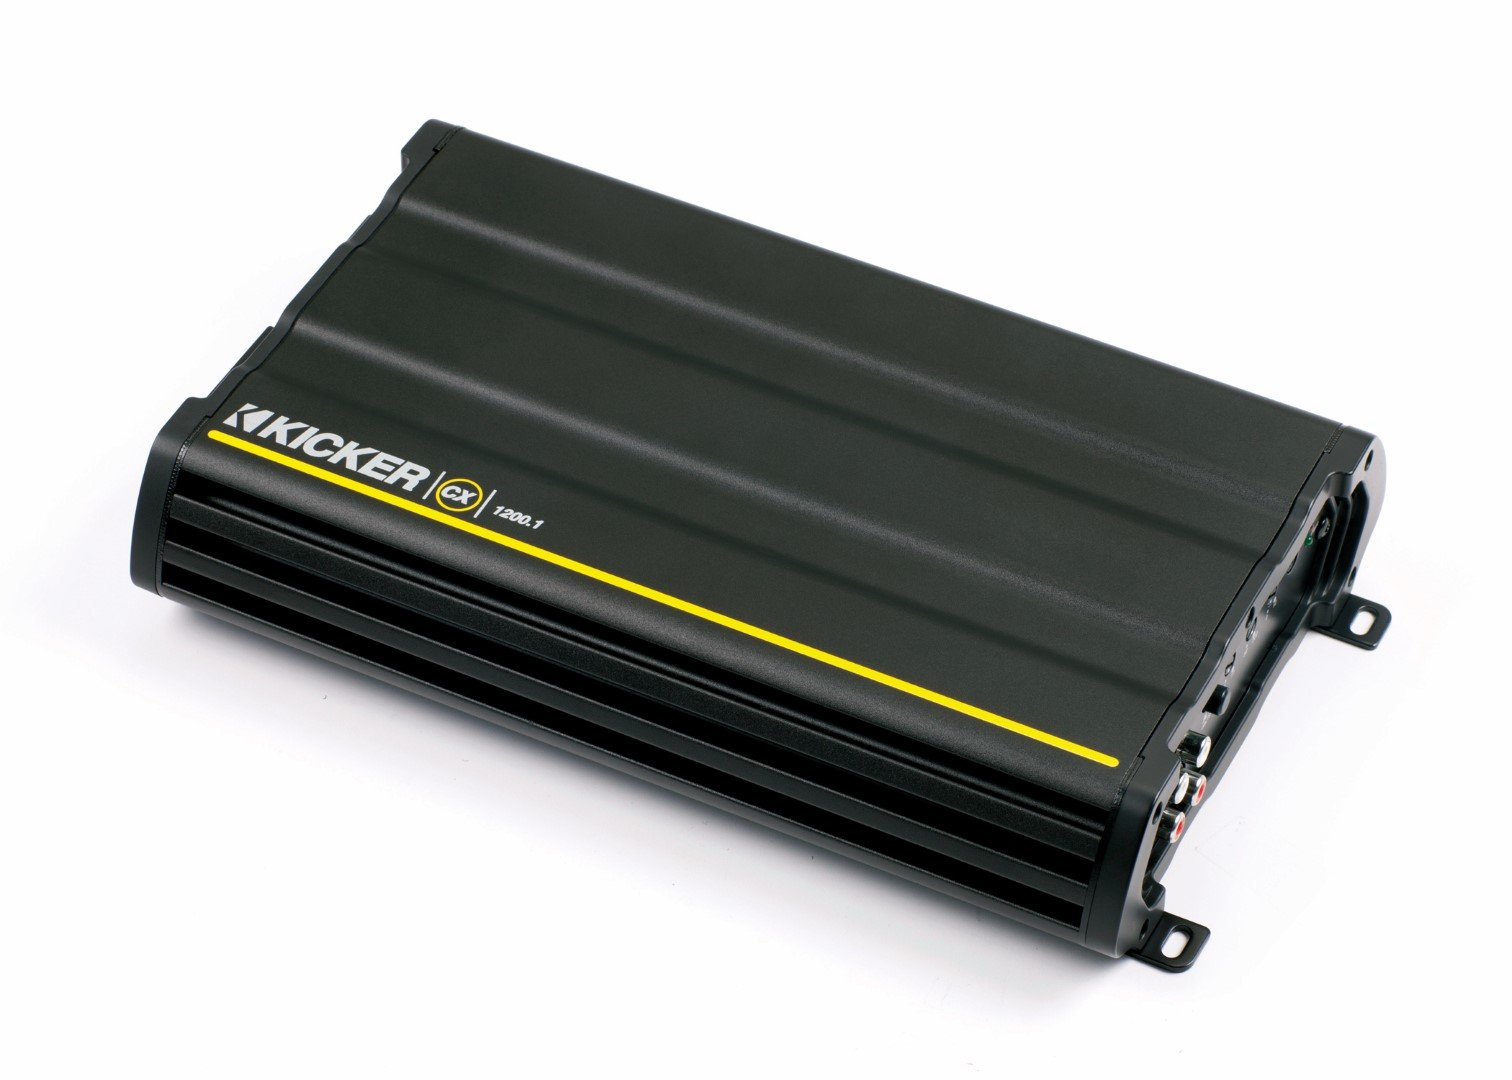 NEW Kicker 12CX12001 1200 Watt Amp Monoblock Car Audio MonoD Power Sub Amplifier